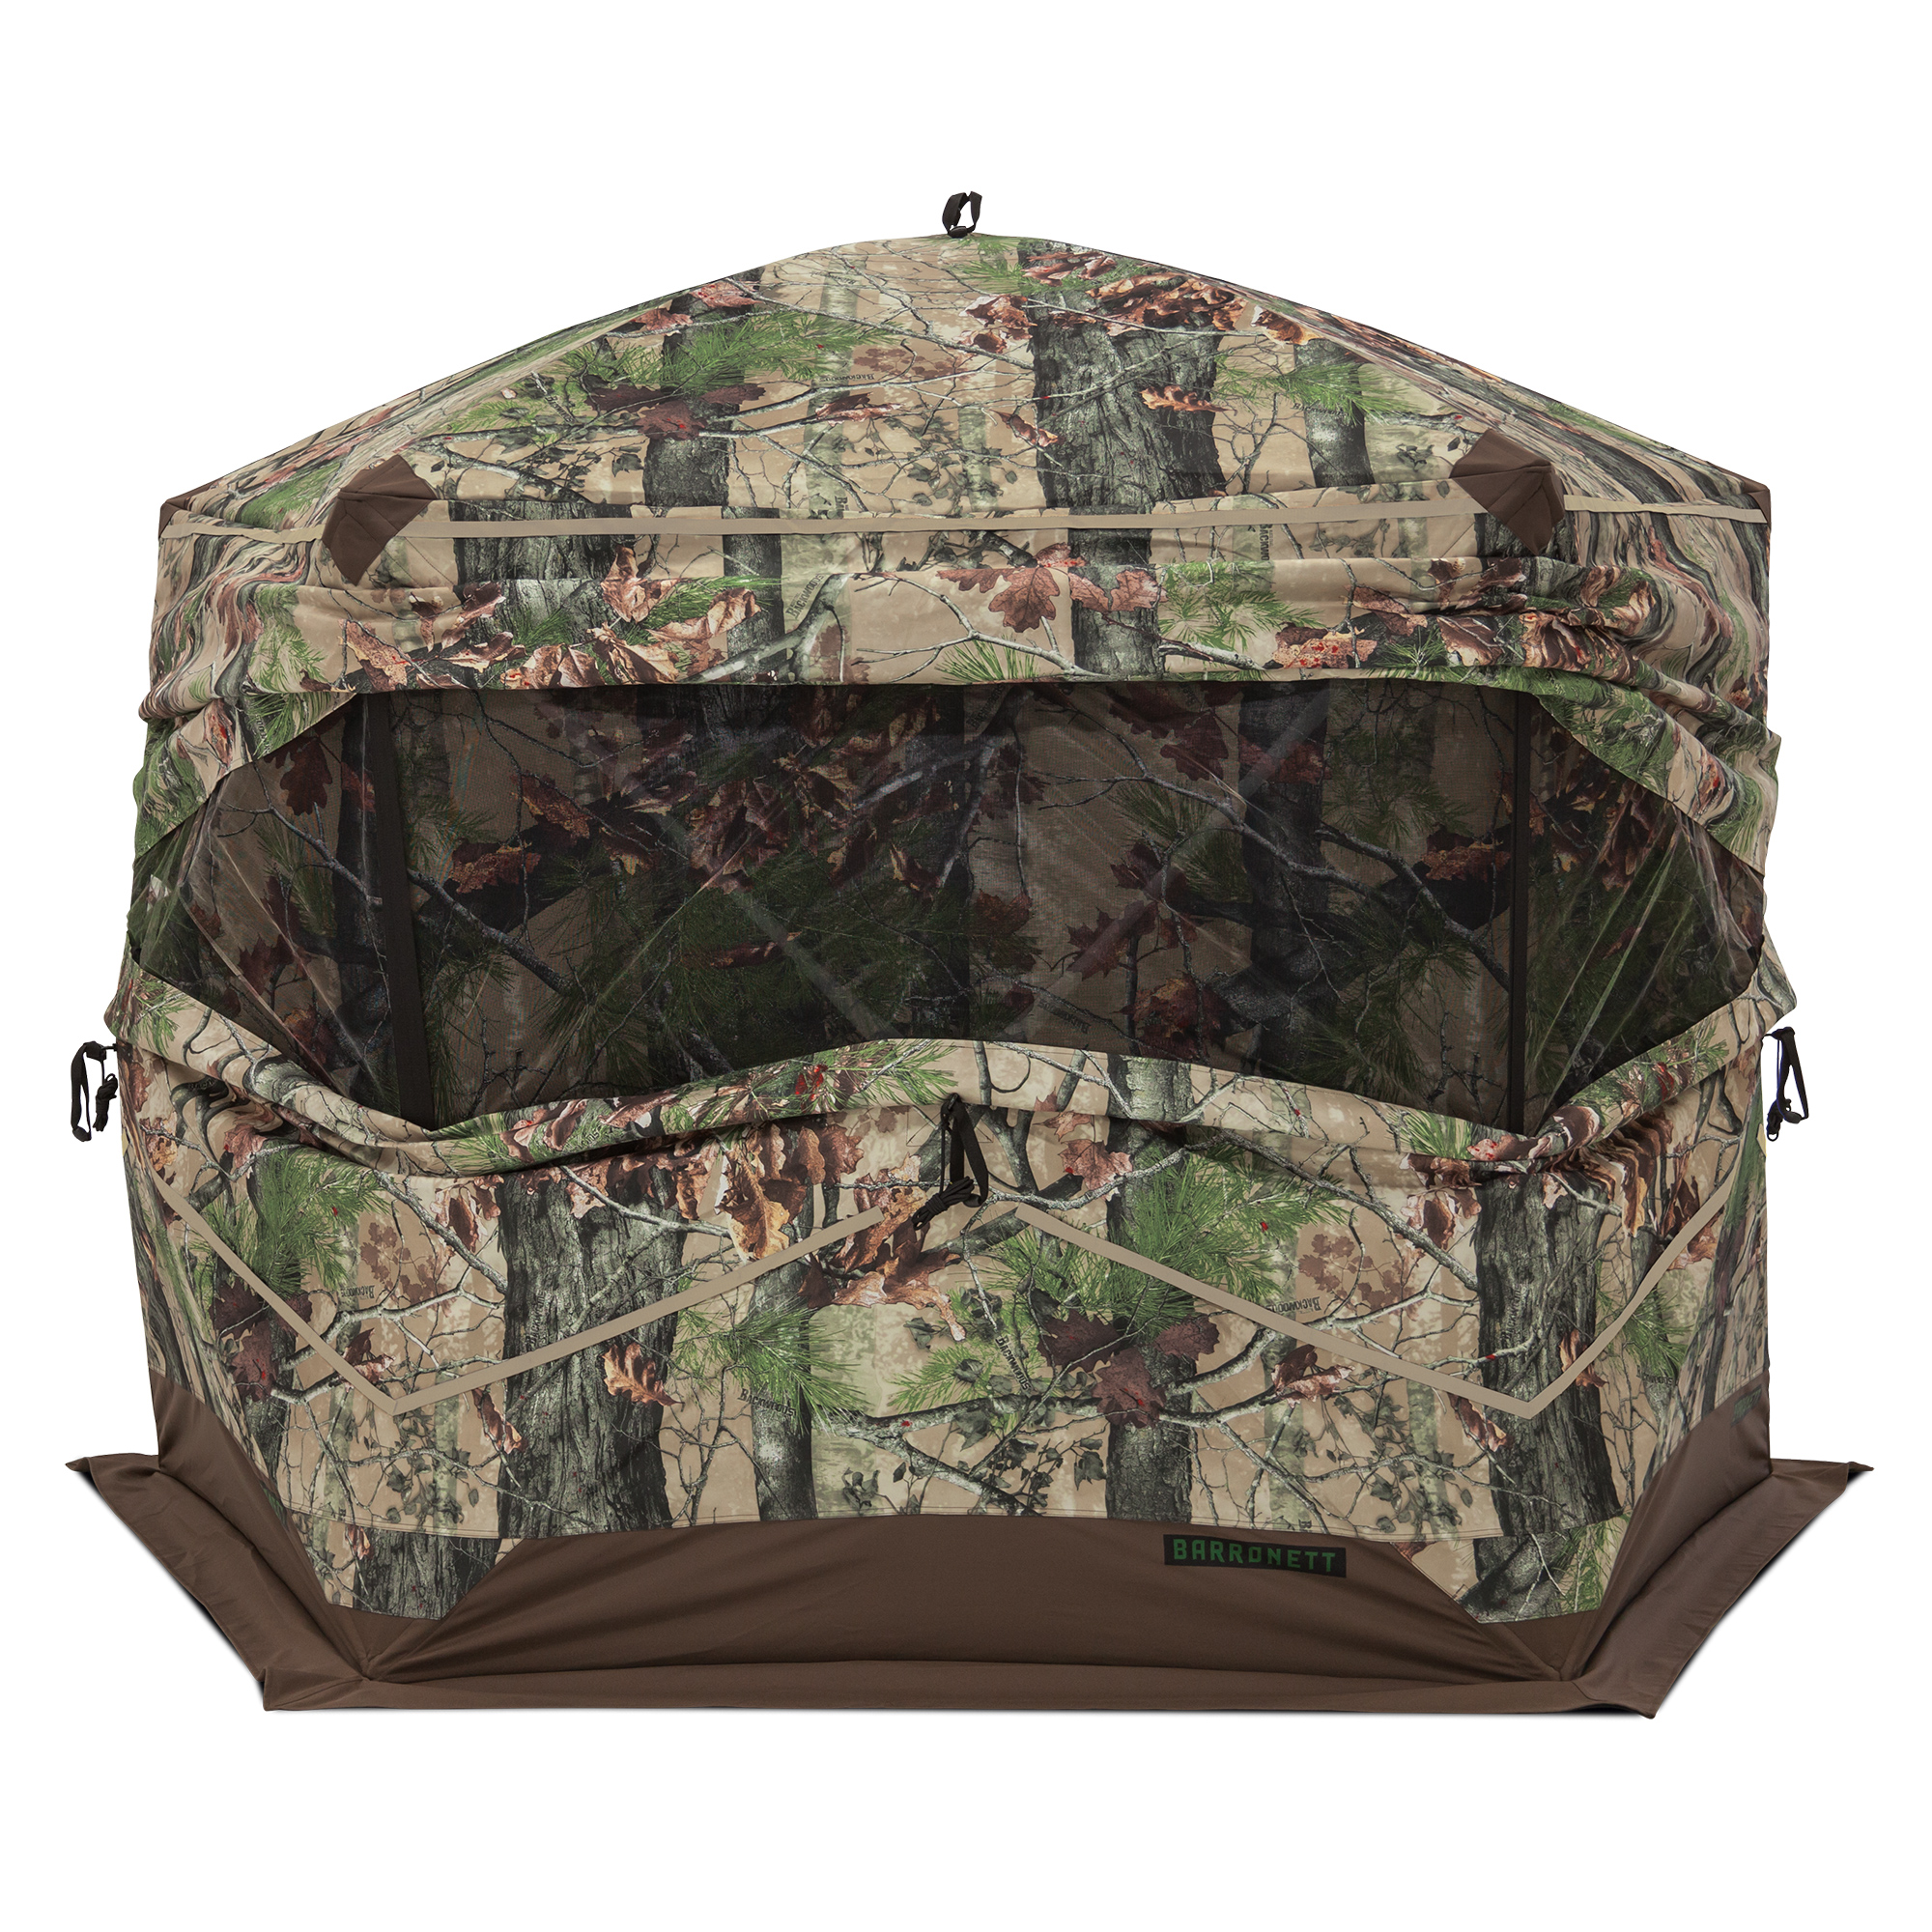 youtube build blind a how deer to watch hunting blinds